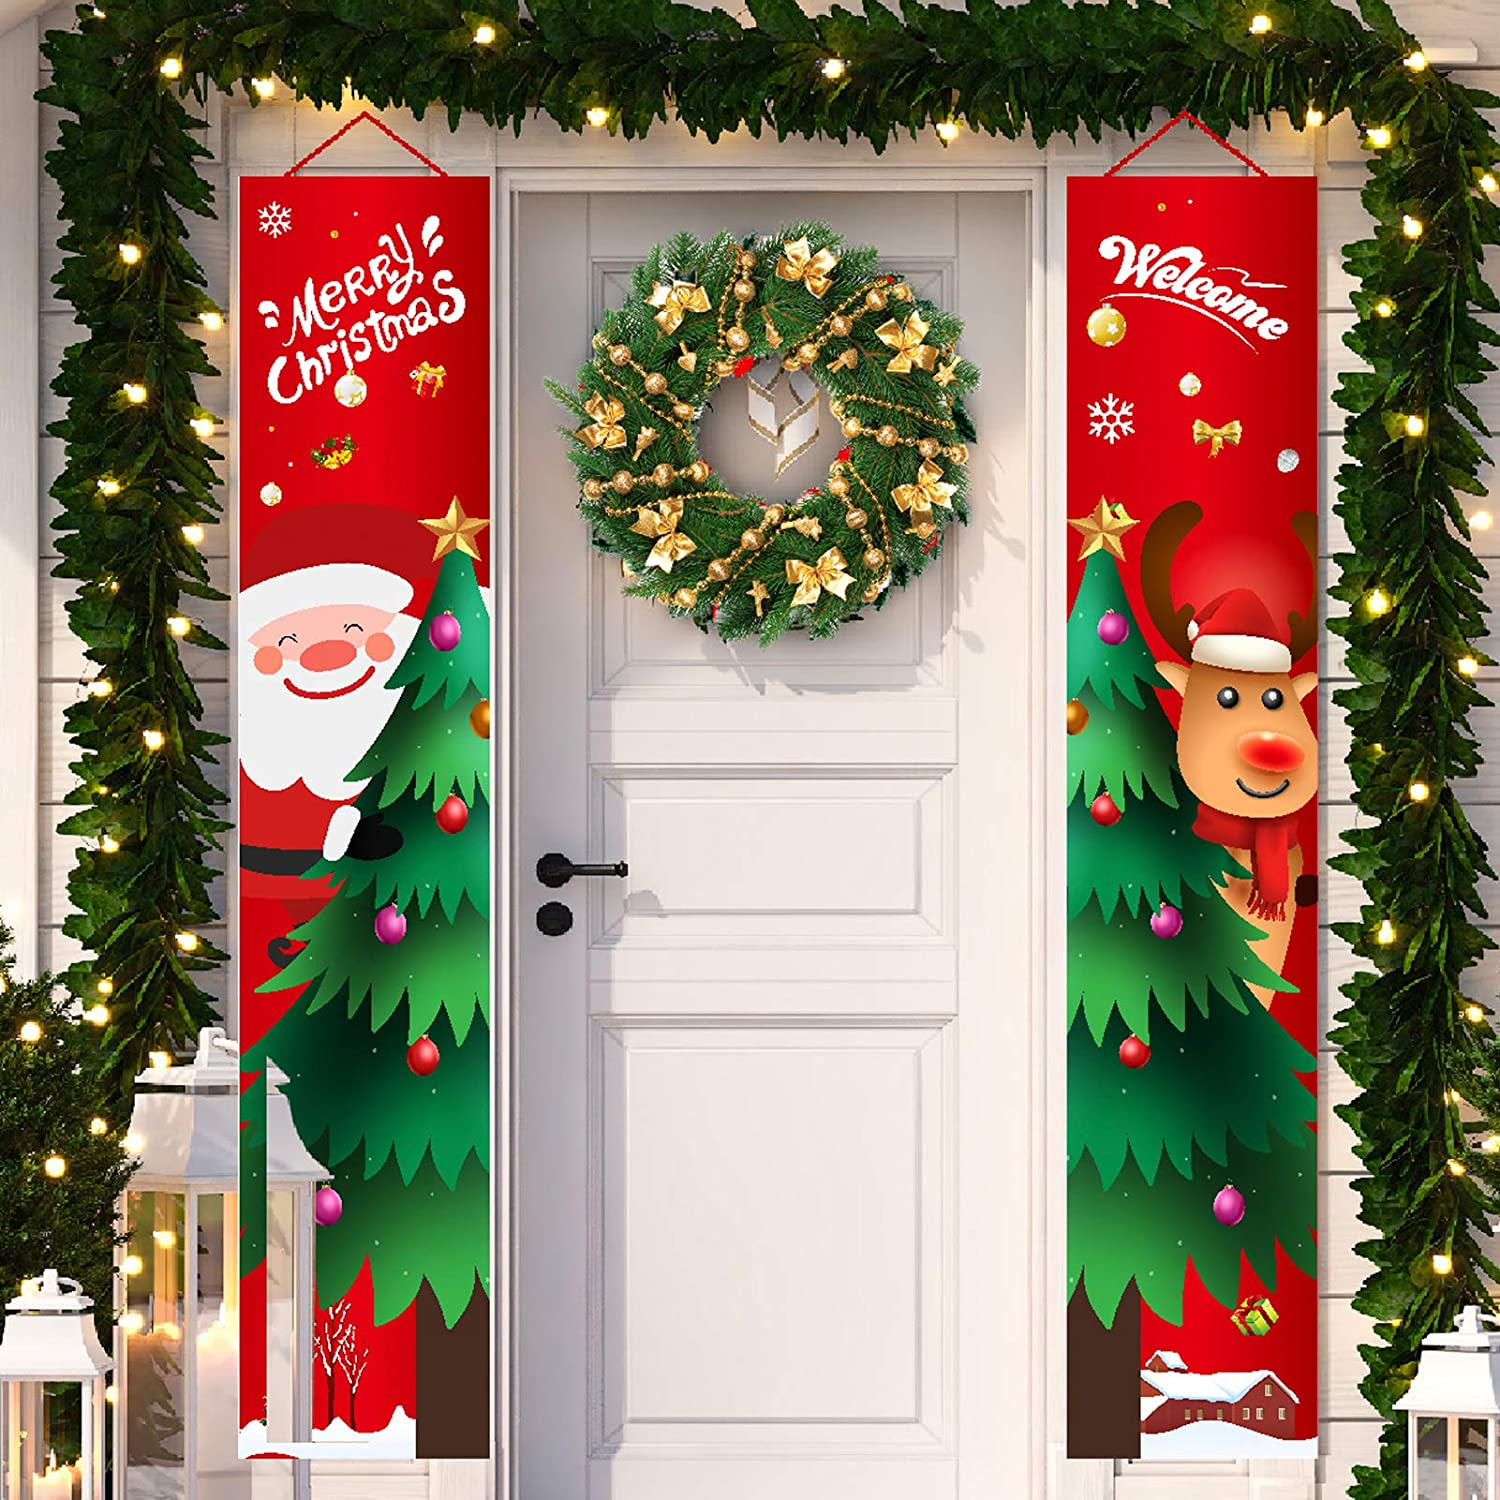 Merry Christmas Banners New Year Outdoor Indoor Christmas Decorations front Decor Decor Elk Santa Claus Bright Red Xmas Porch Sign Hanging for Home Wall Door Holiday Party Decor (Red-Christmas Banner)